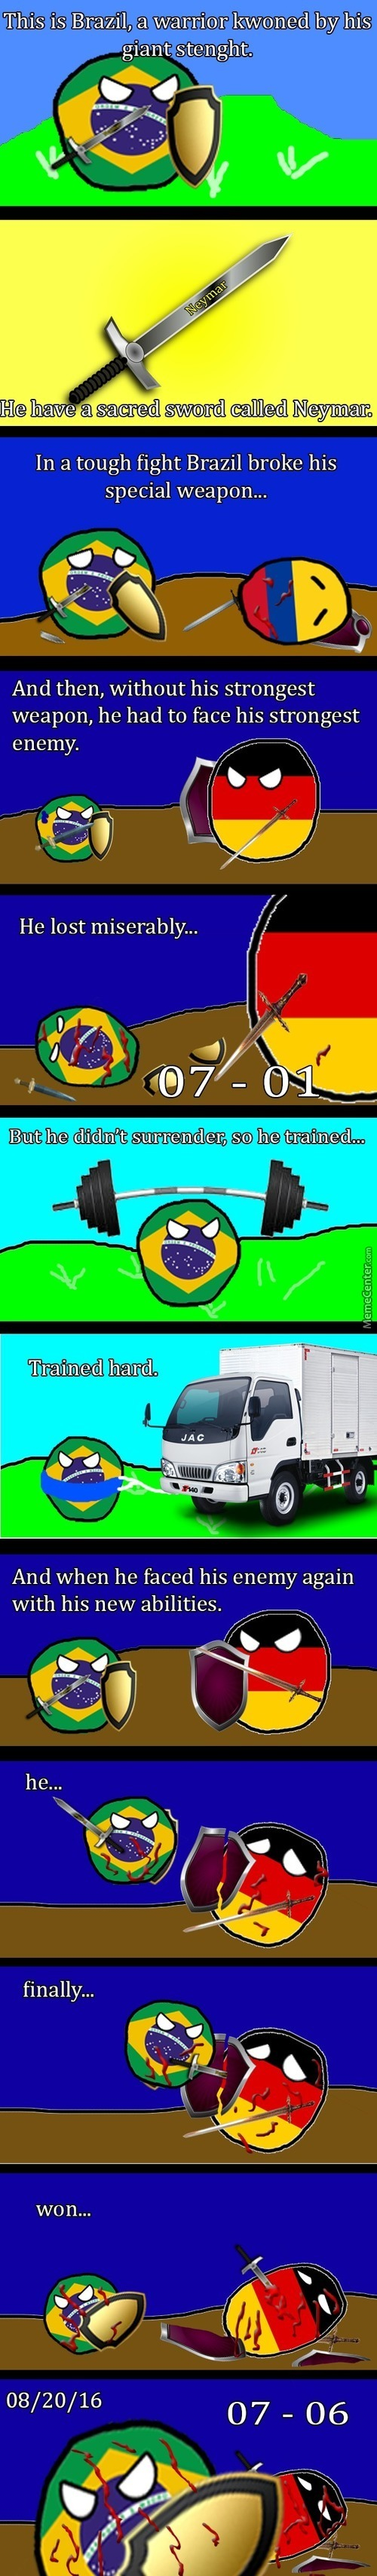 This Is Shounen About Brazil. We Won!